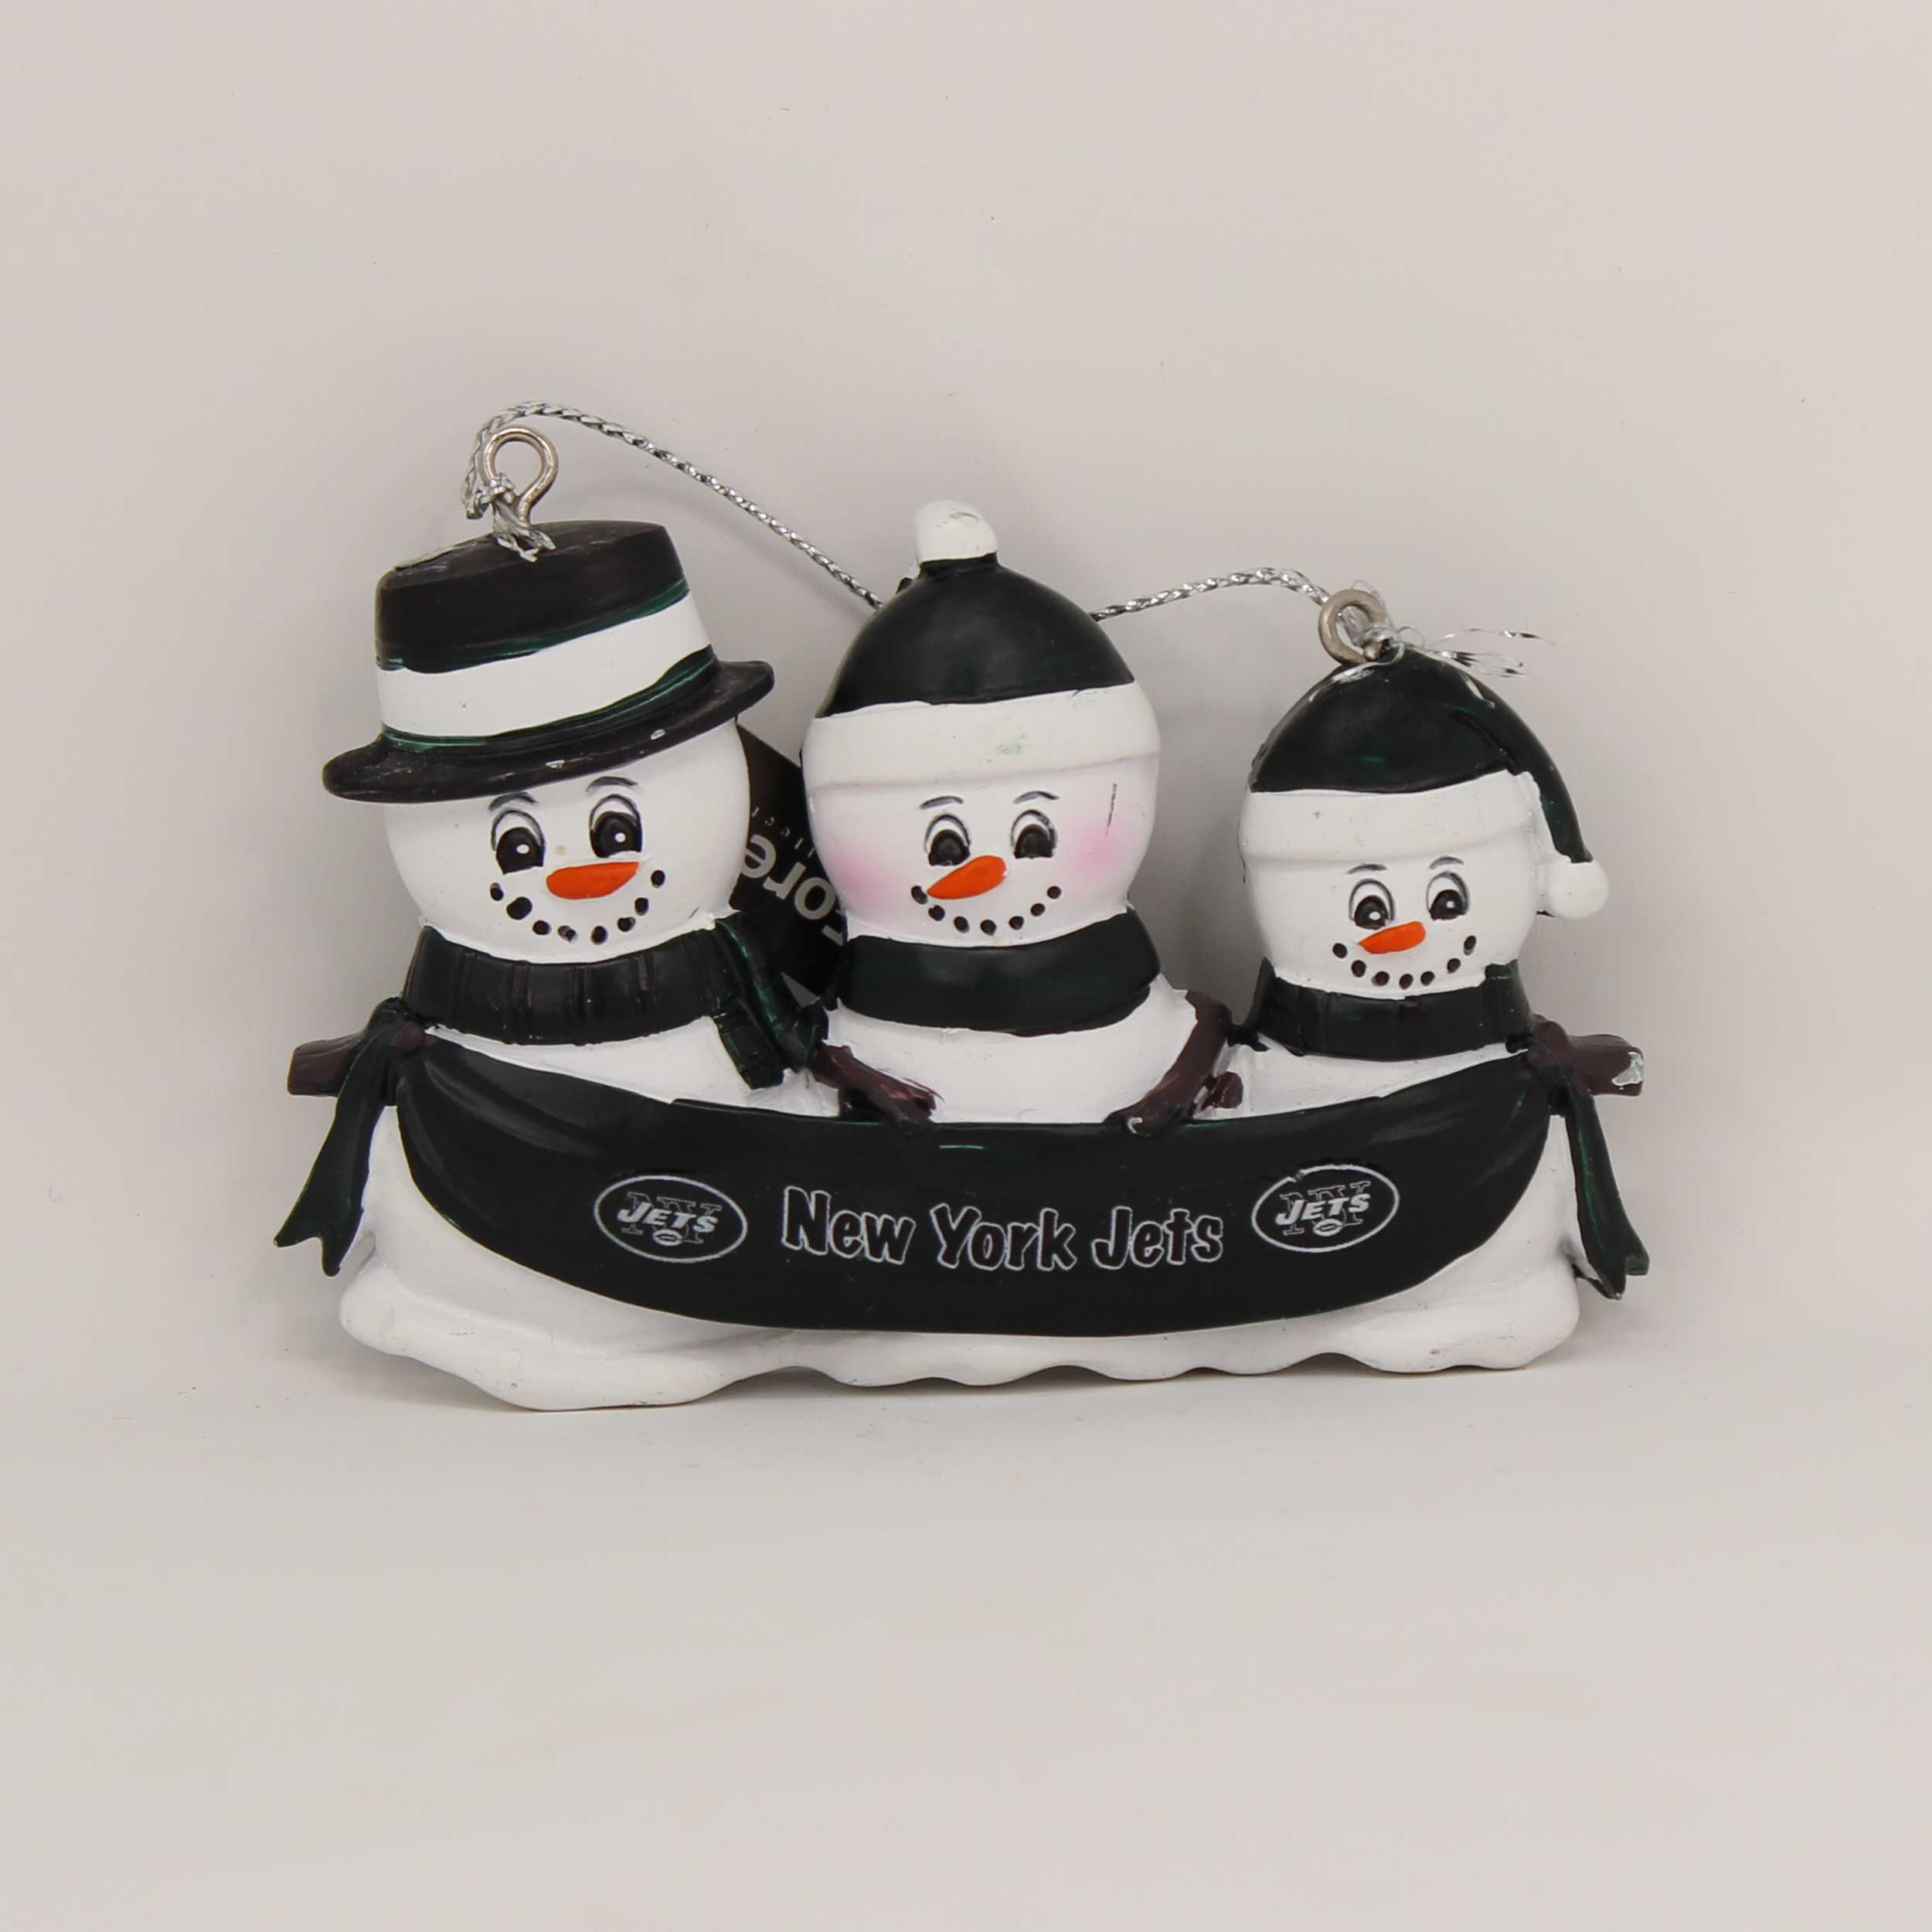 Personalized Family Ornament New York Jets